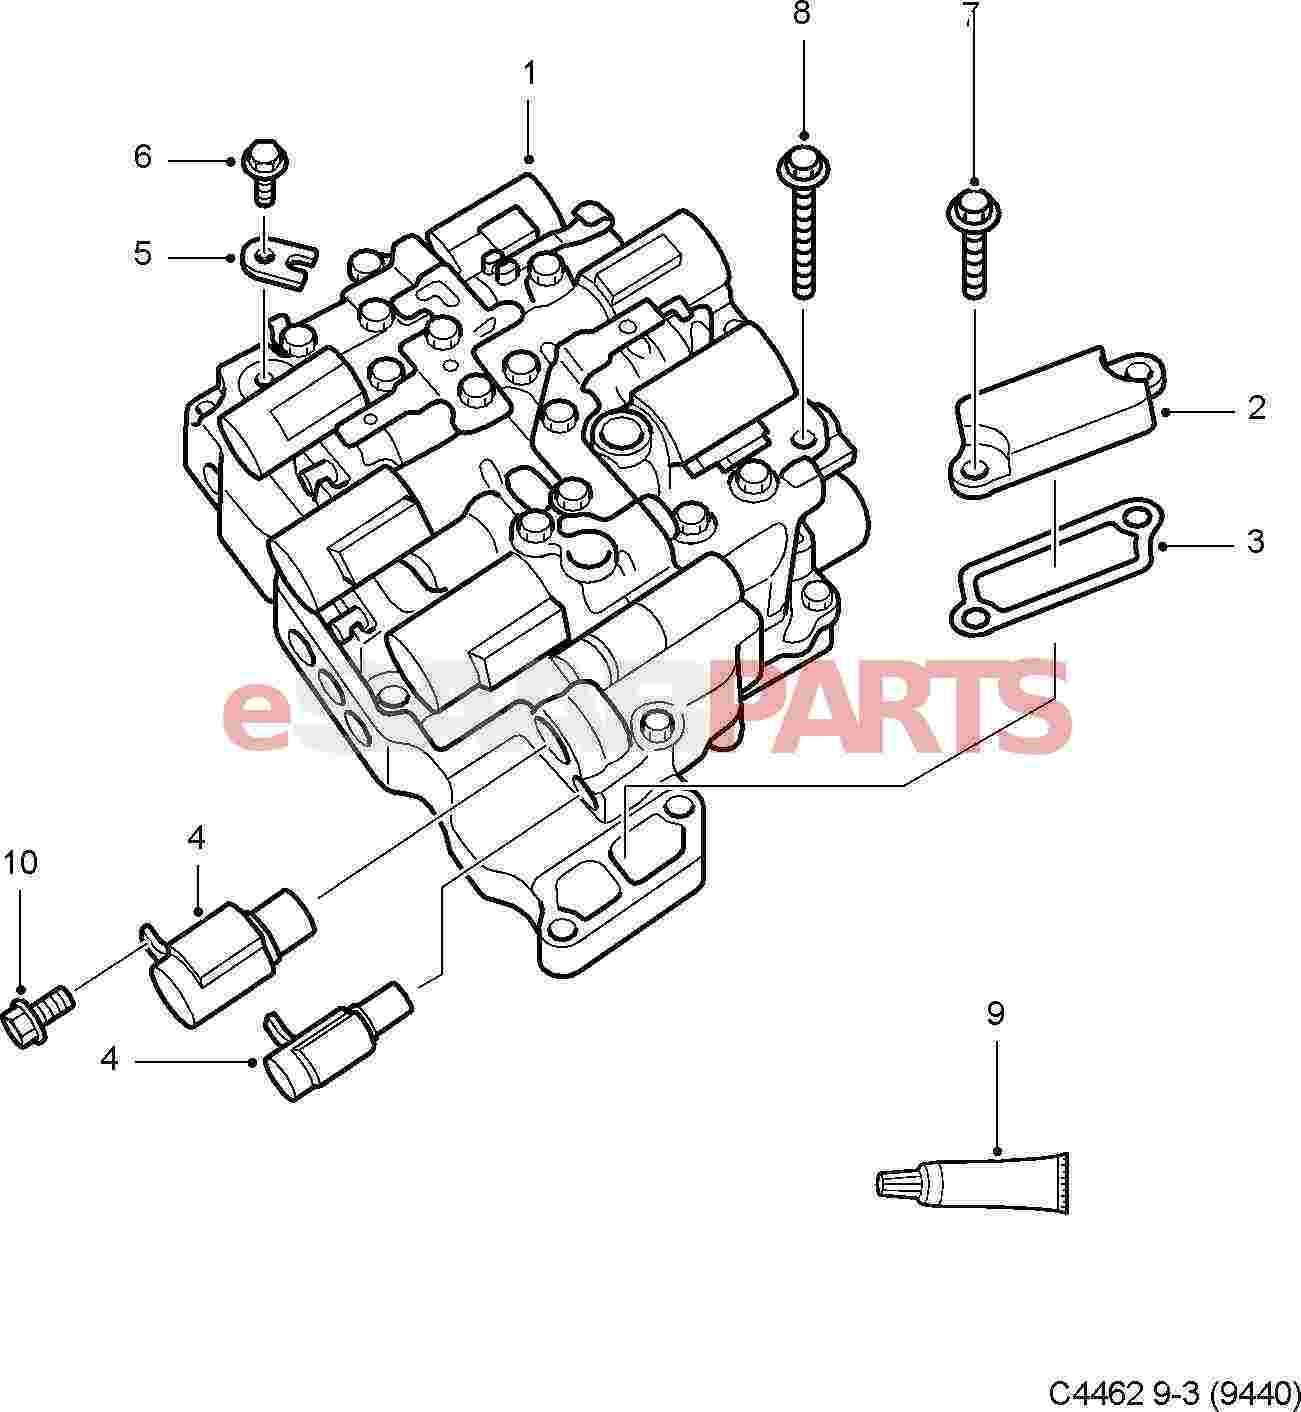 2002 Mercury Grand Marquis Serpentine Belt Diagram Wiring